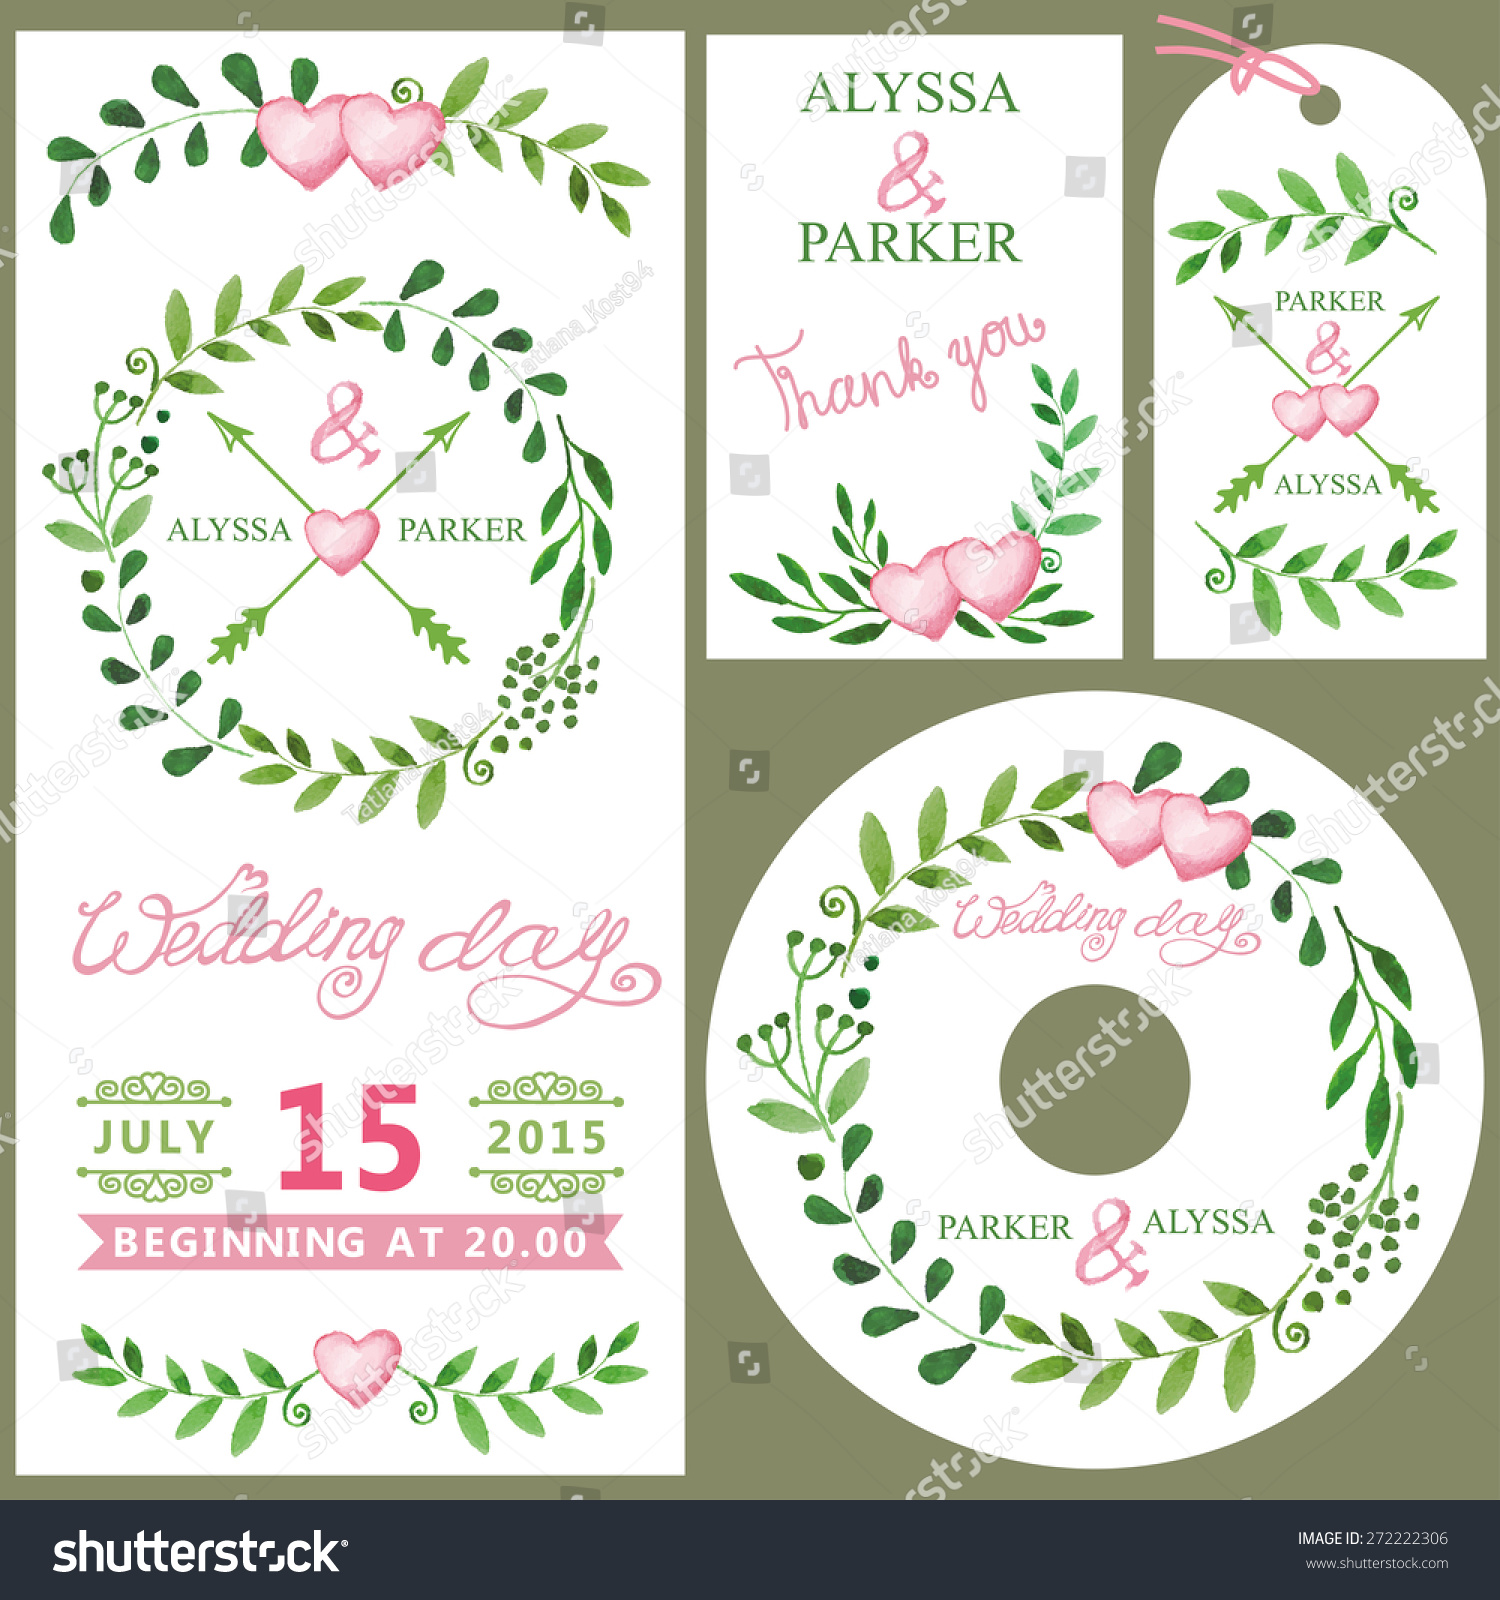 wedding invitation design template setwatercolor green branches wreathpink heartribbon